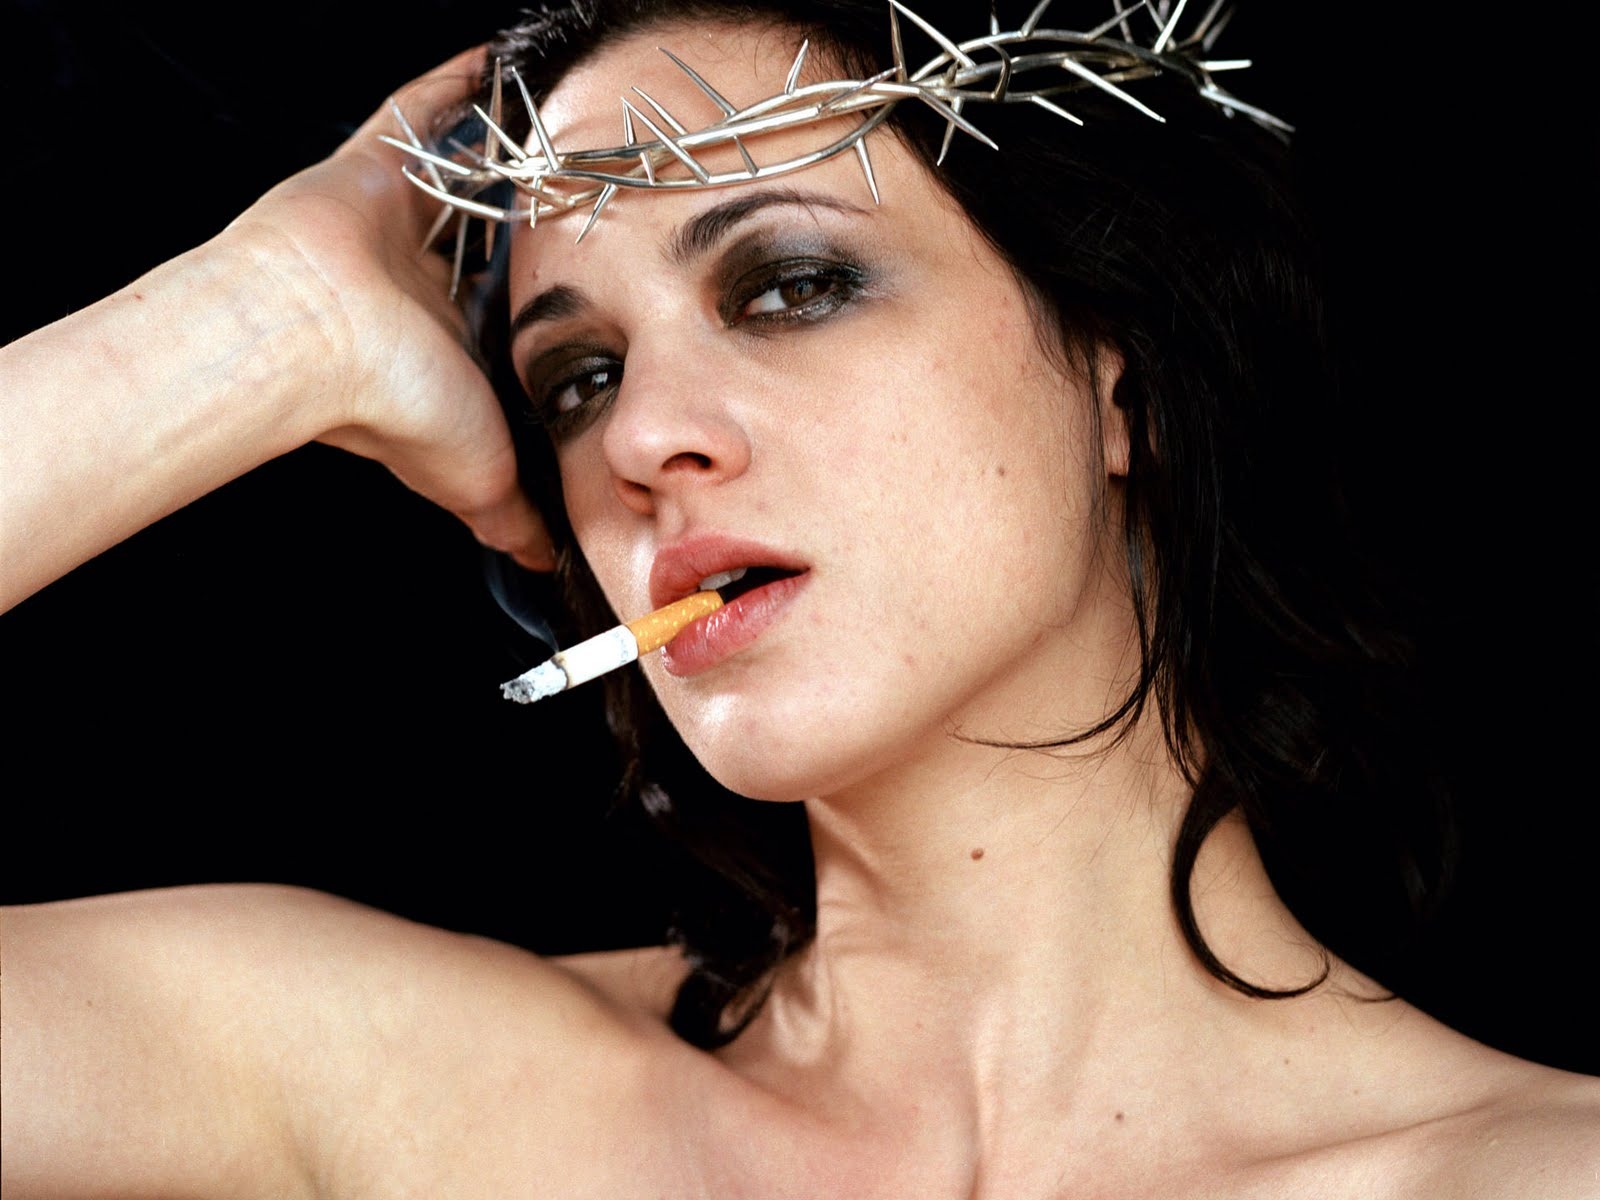 Asia Argento Hot Pictures, Photo Gallery & Wallpapers Ashlee Simpson Instagram